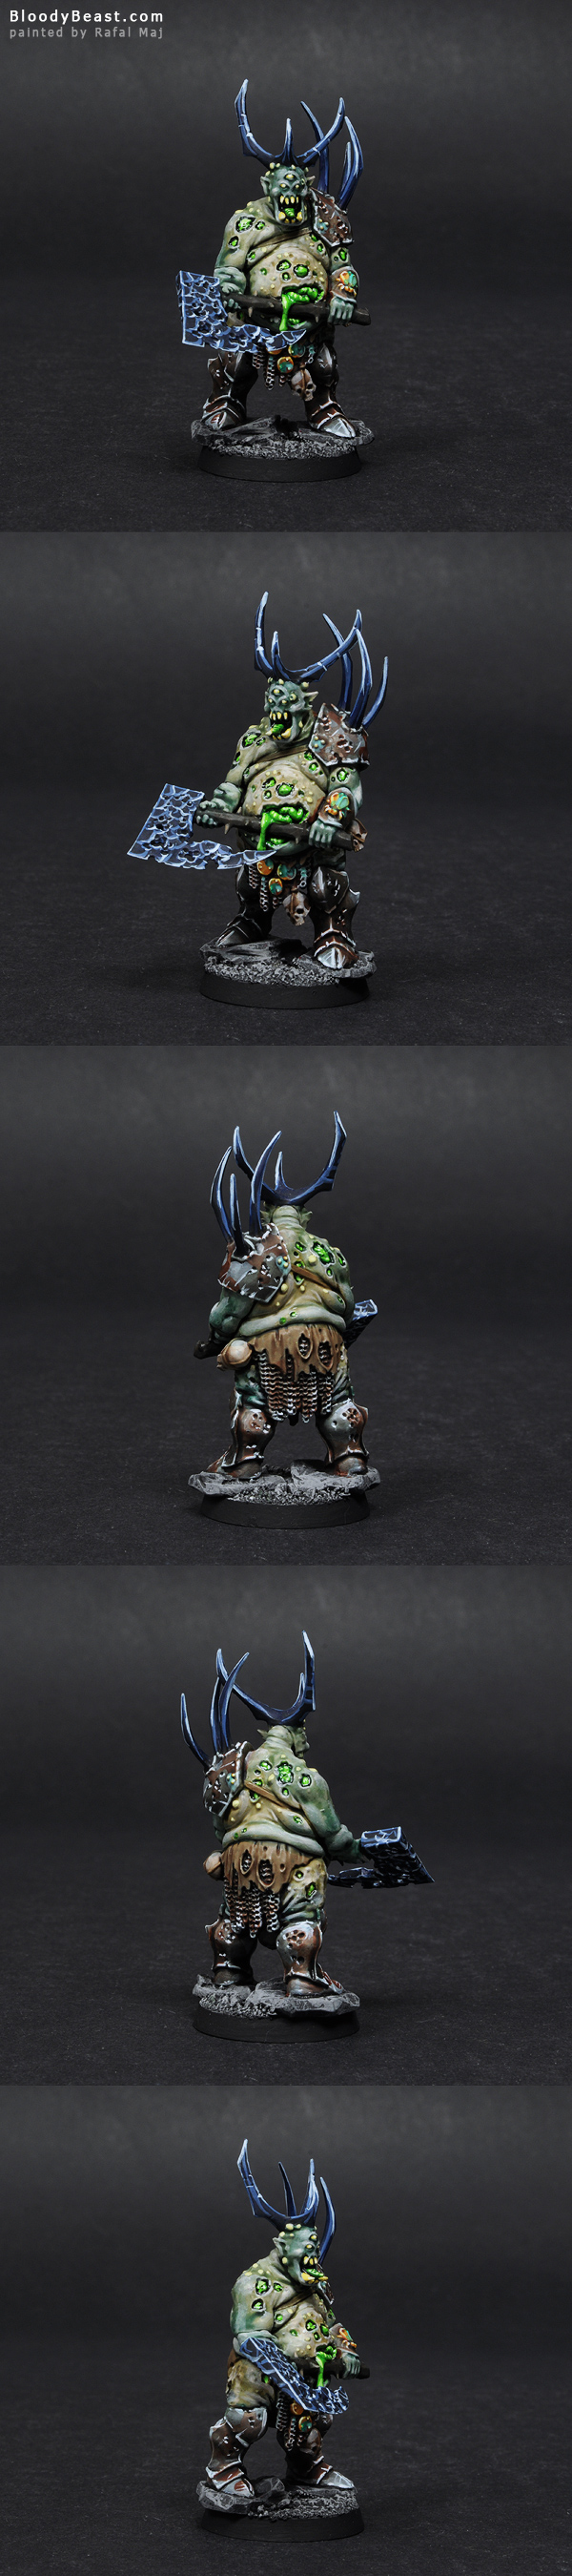 Herald of Nurgle converted and painted by Rafal Maj (BloodyBeast.com)